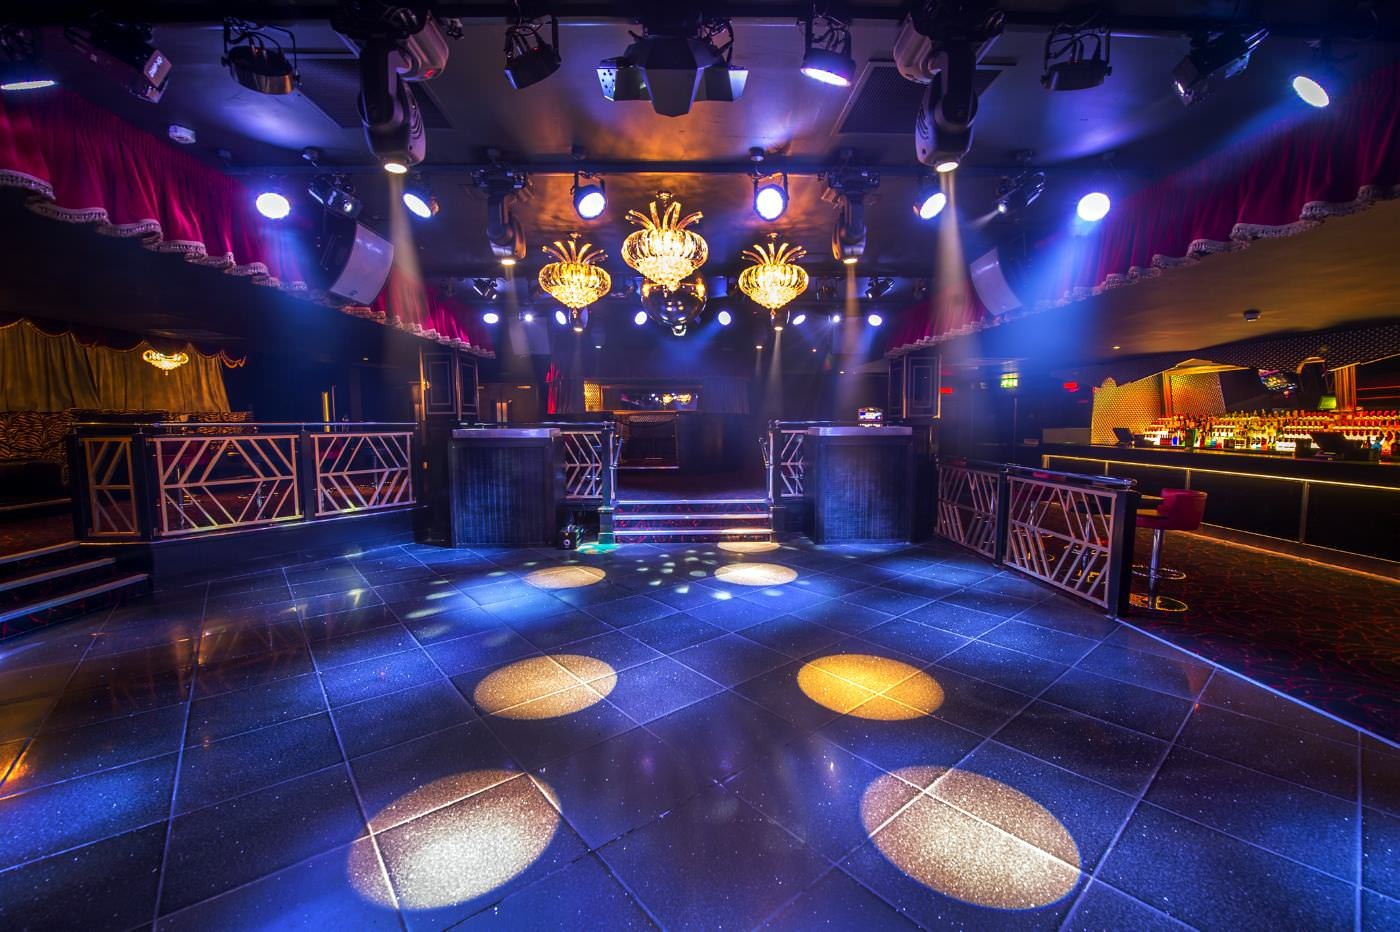 Pulse dancefloor